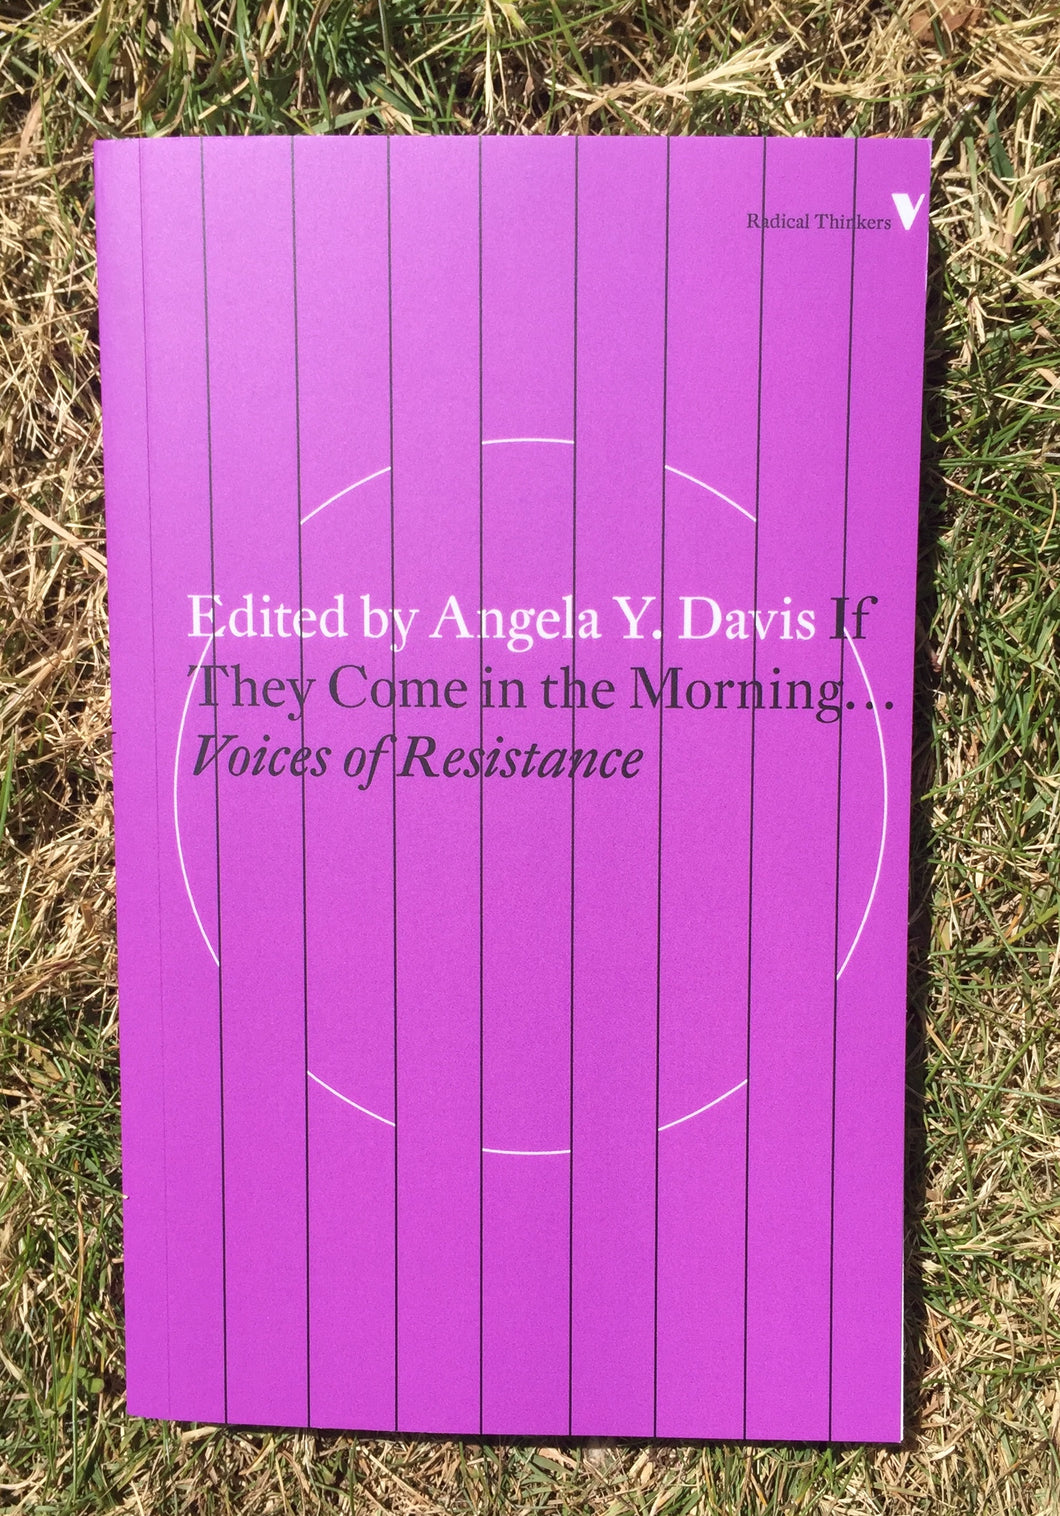 If They Come in the Morning … Voices of Resistance Book Edited by Angela Y. Davis